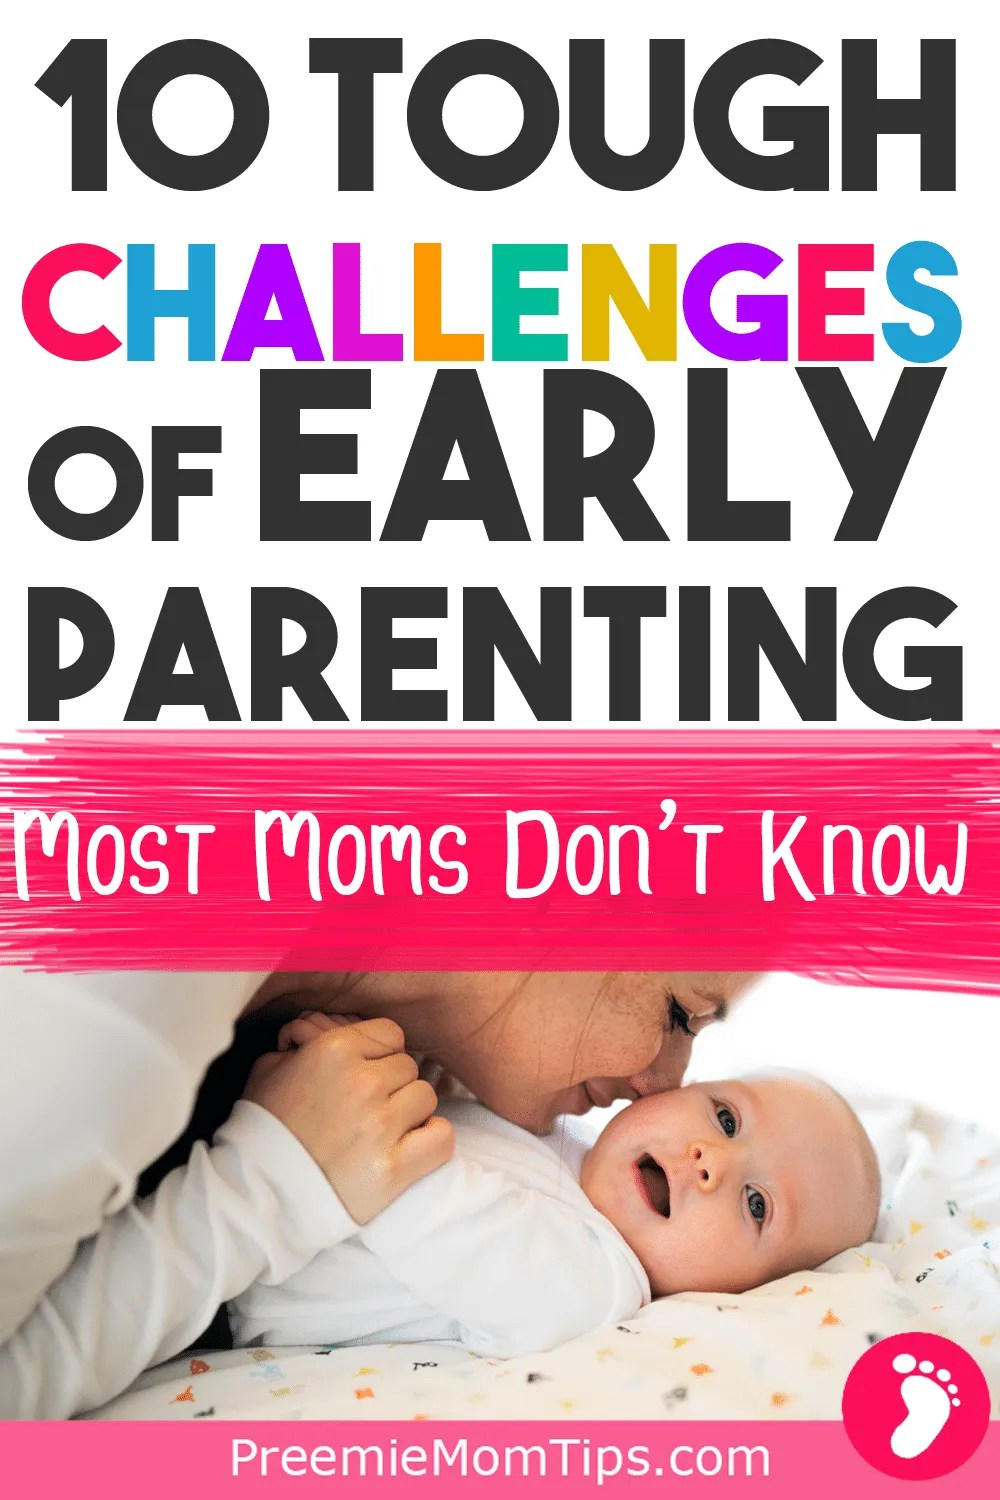 Are you a new mom? Did you know that most first time moms don't know about the most common challenges of having a new baby? If you're pregnant or you just had a baby, you need to read this.